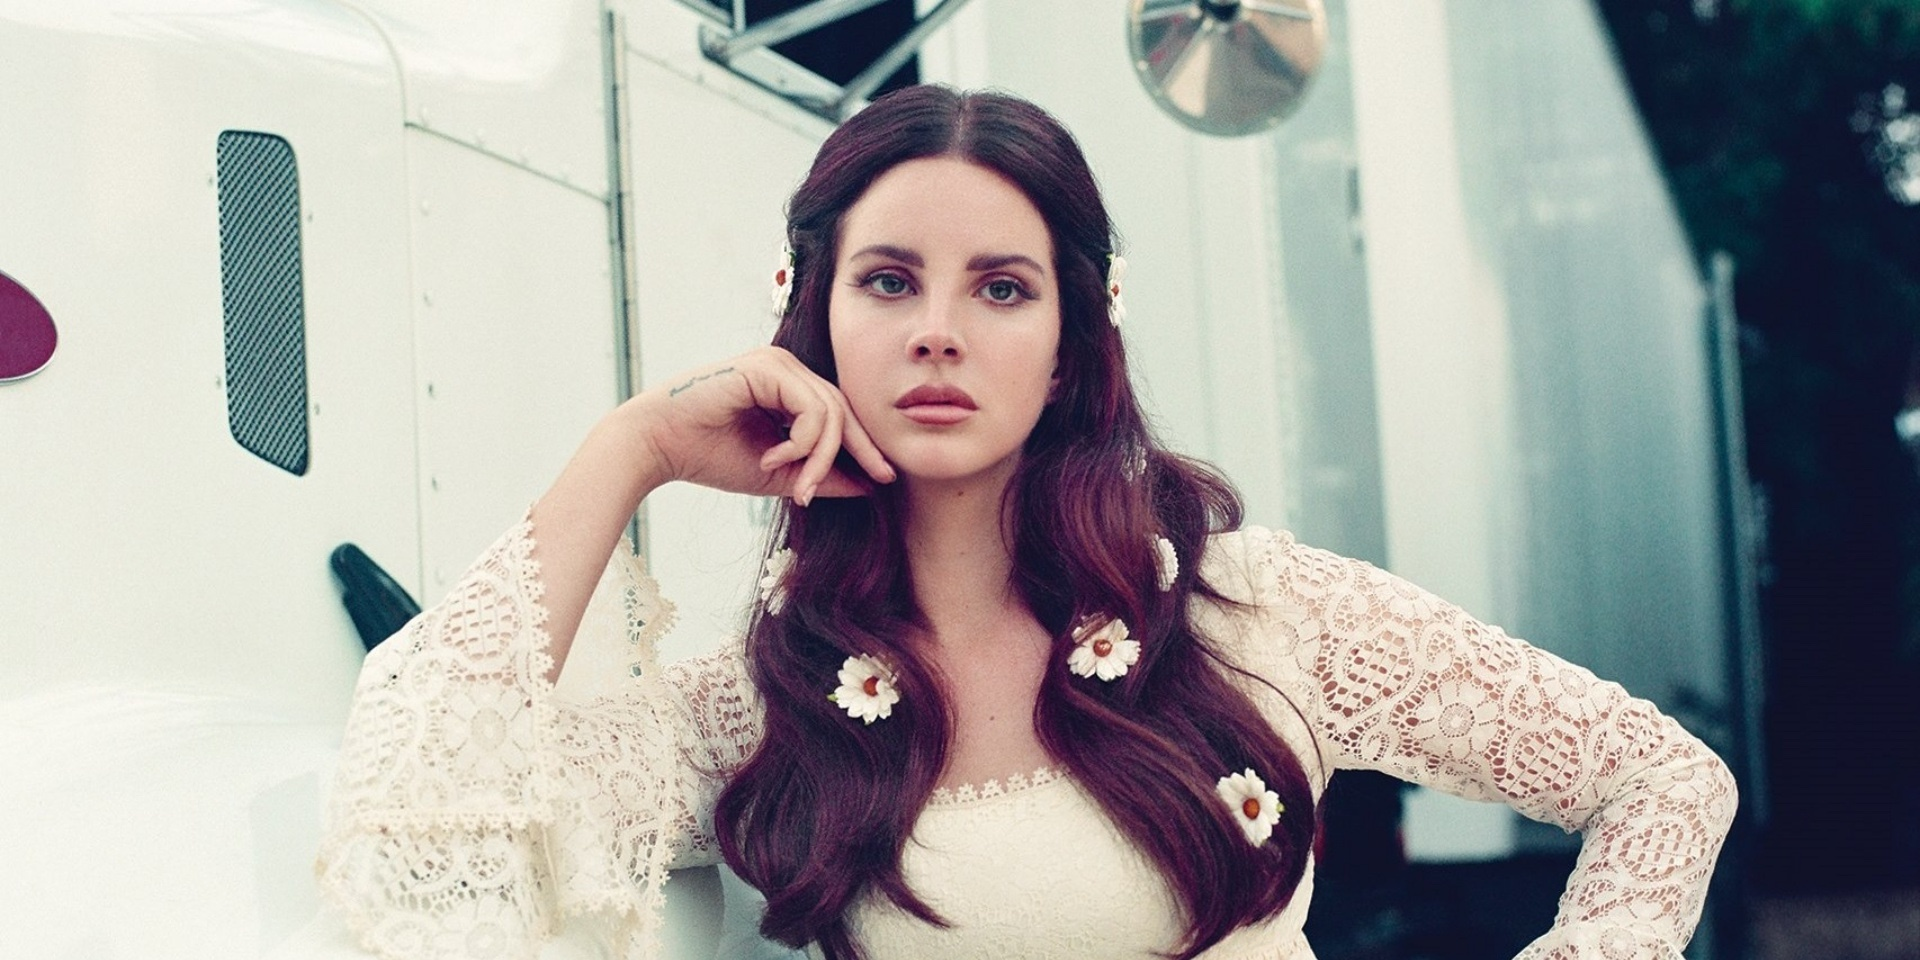 Lana Del Rey debuts a new song 'How to Disappear' at the Apple Event